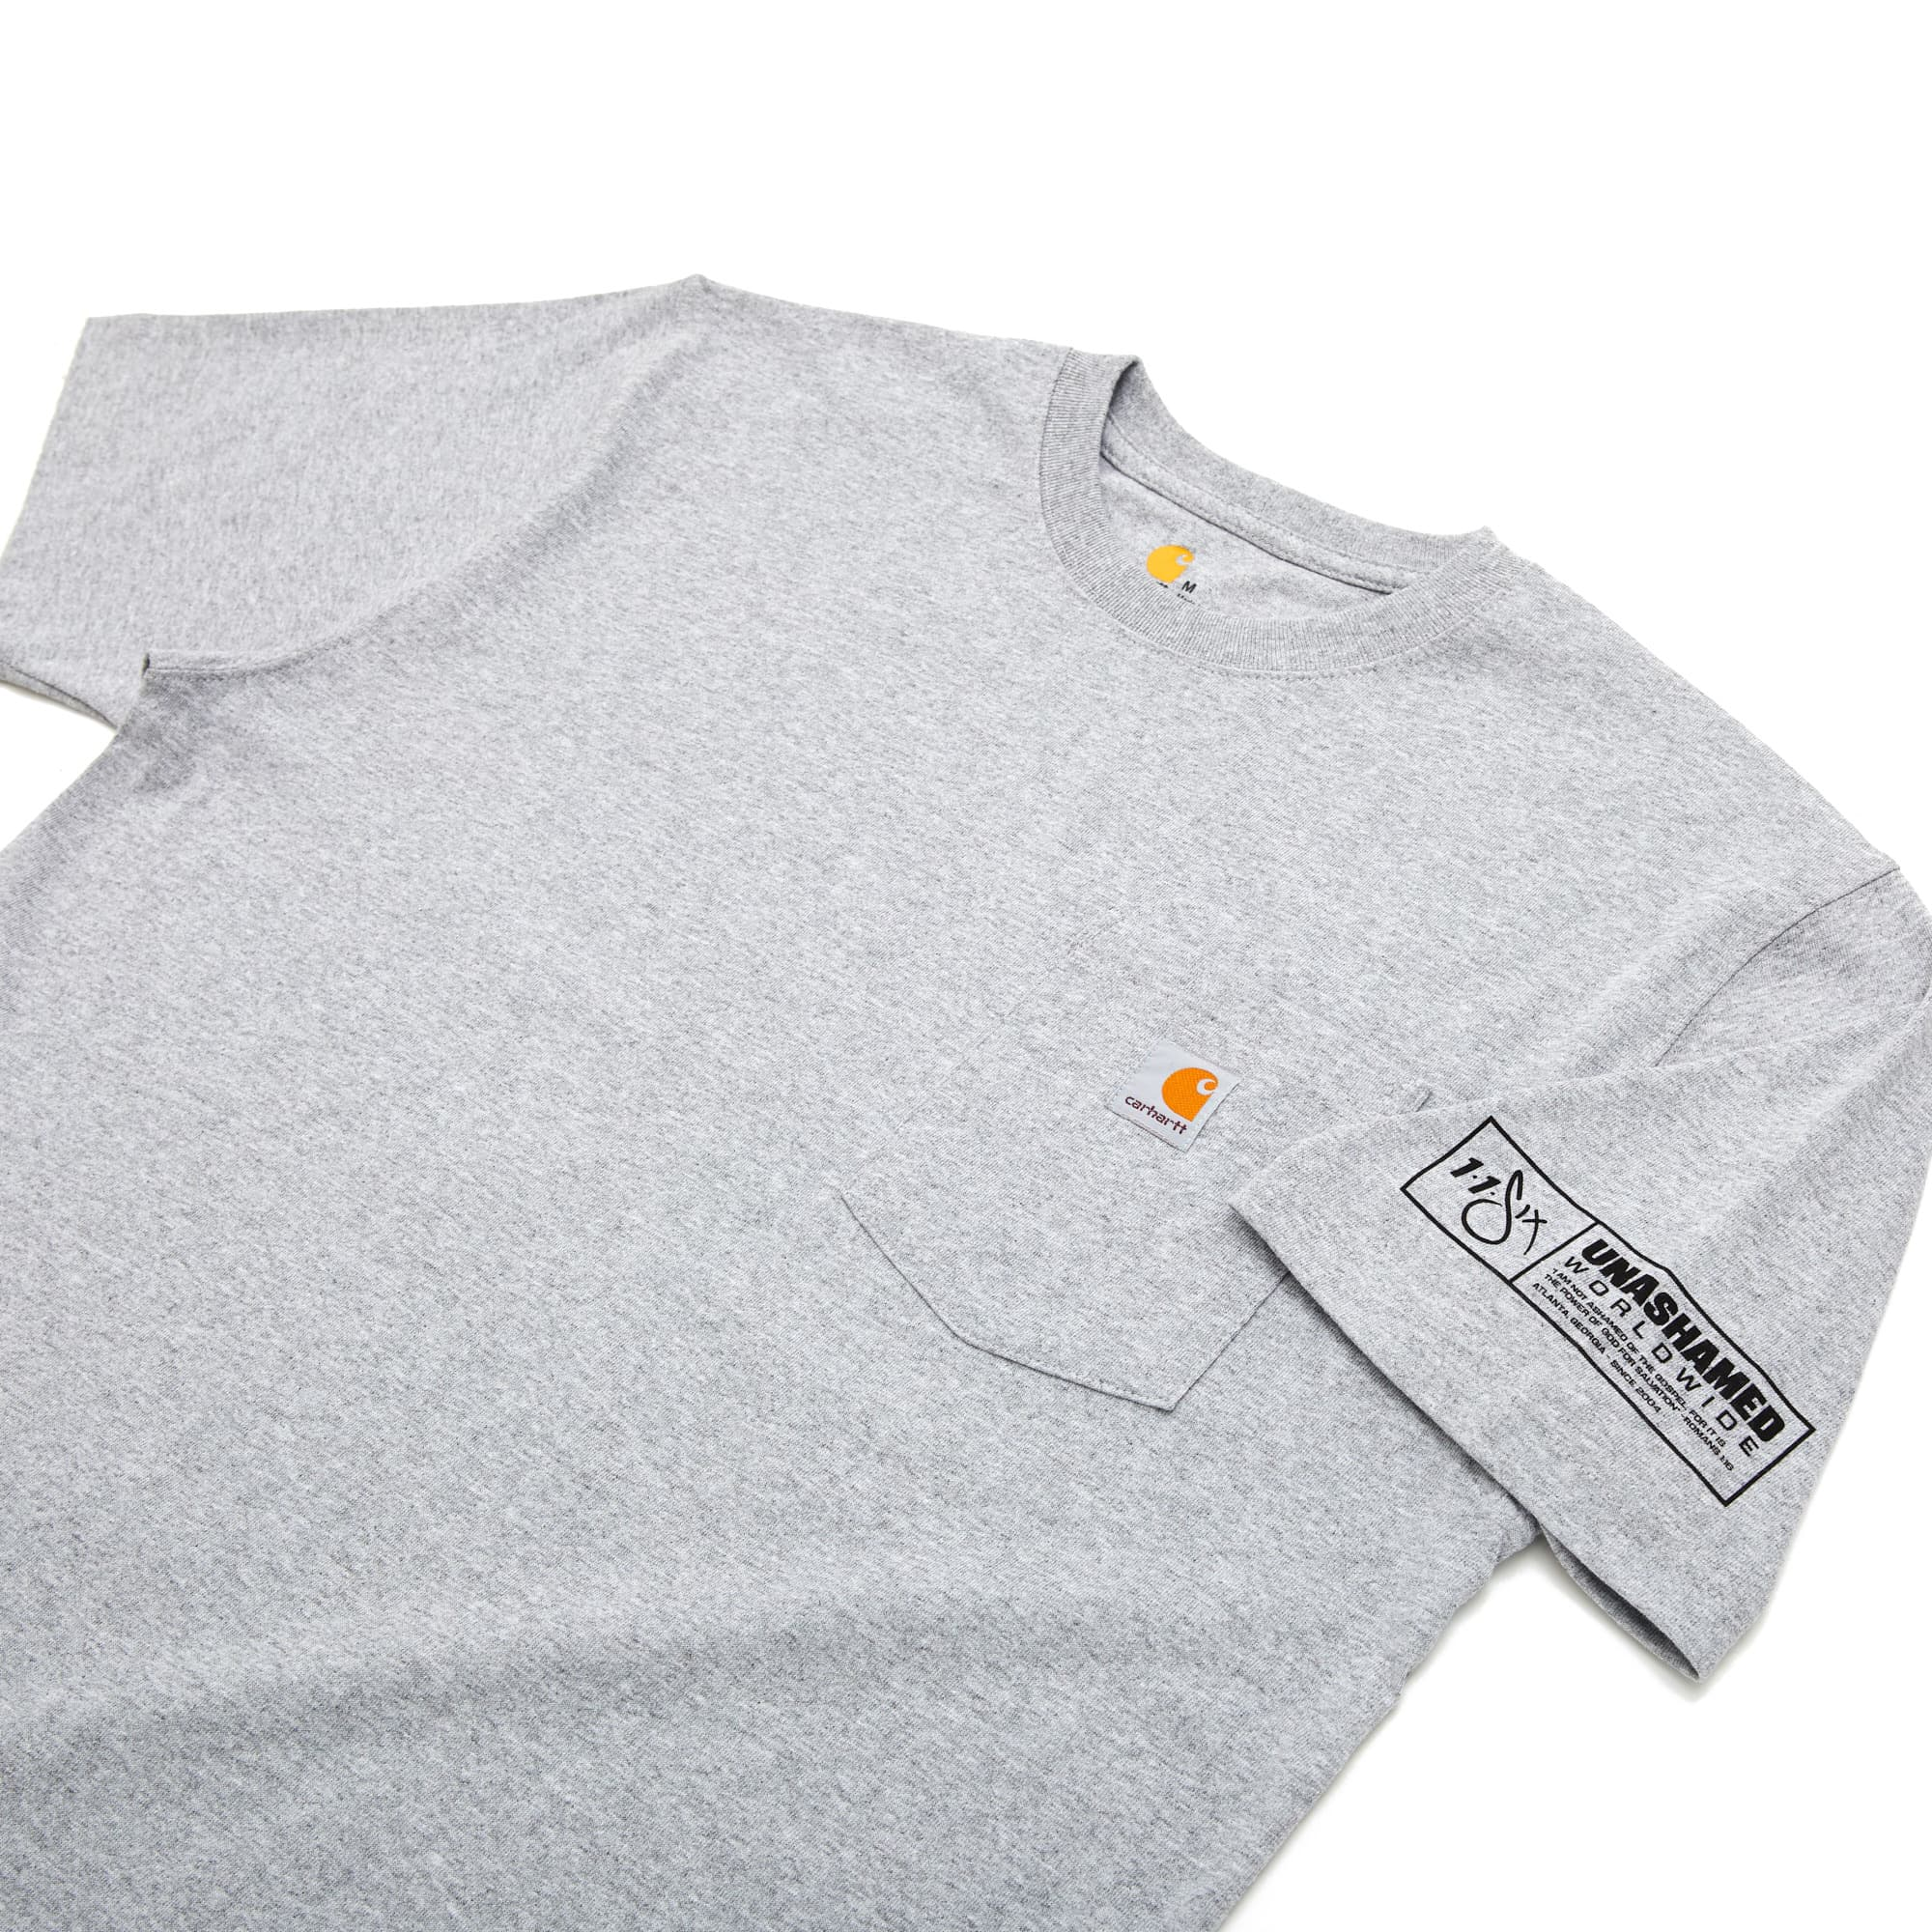 116 x Carhartt 'Not For Human Masters' Tee